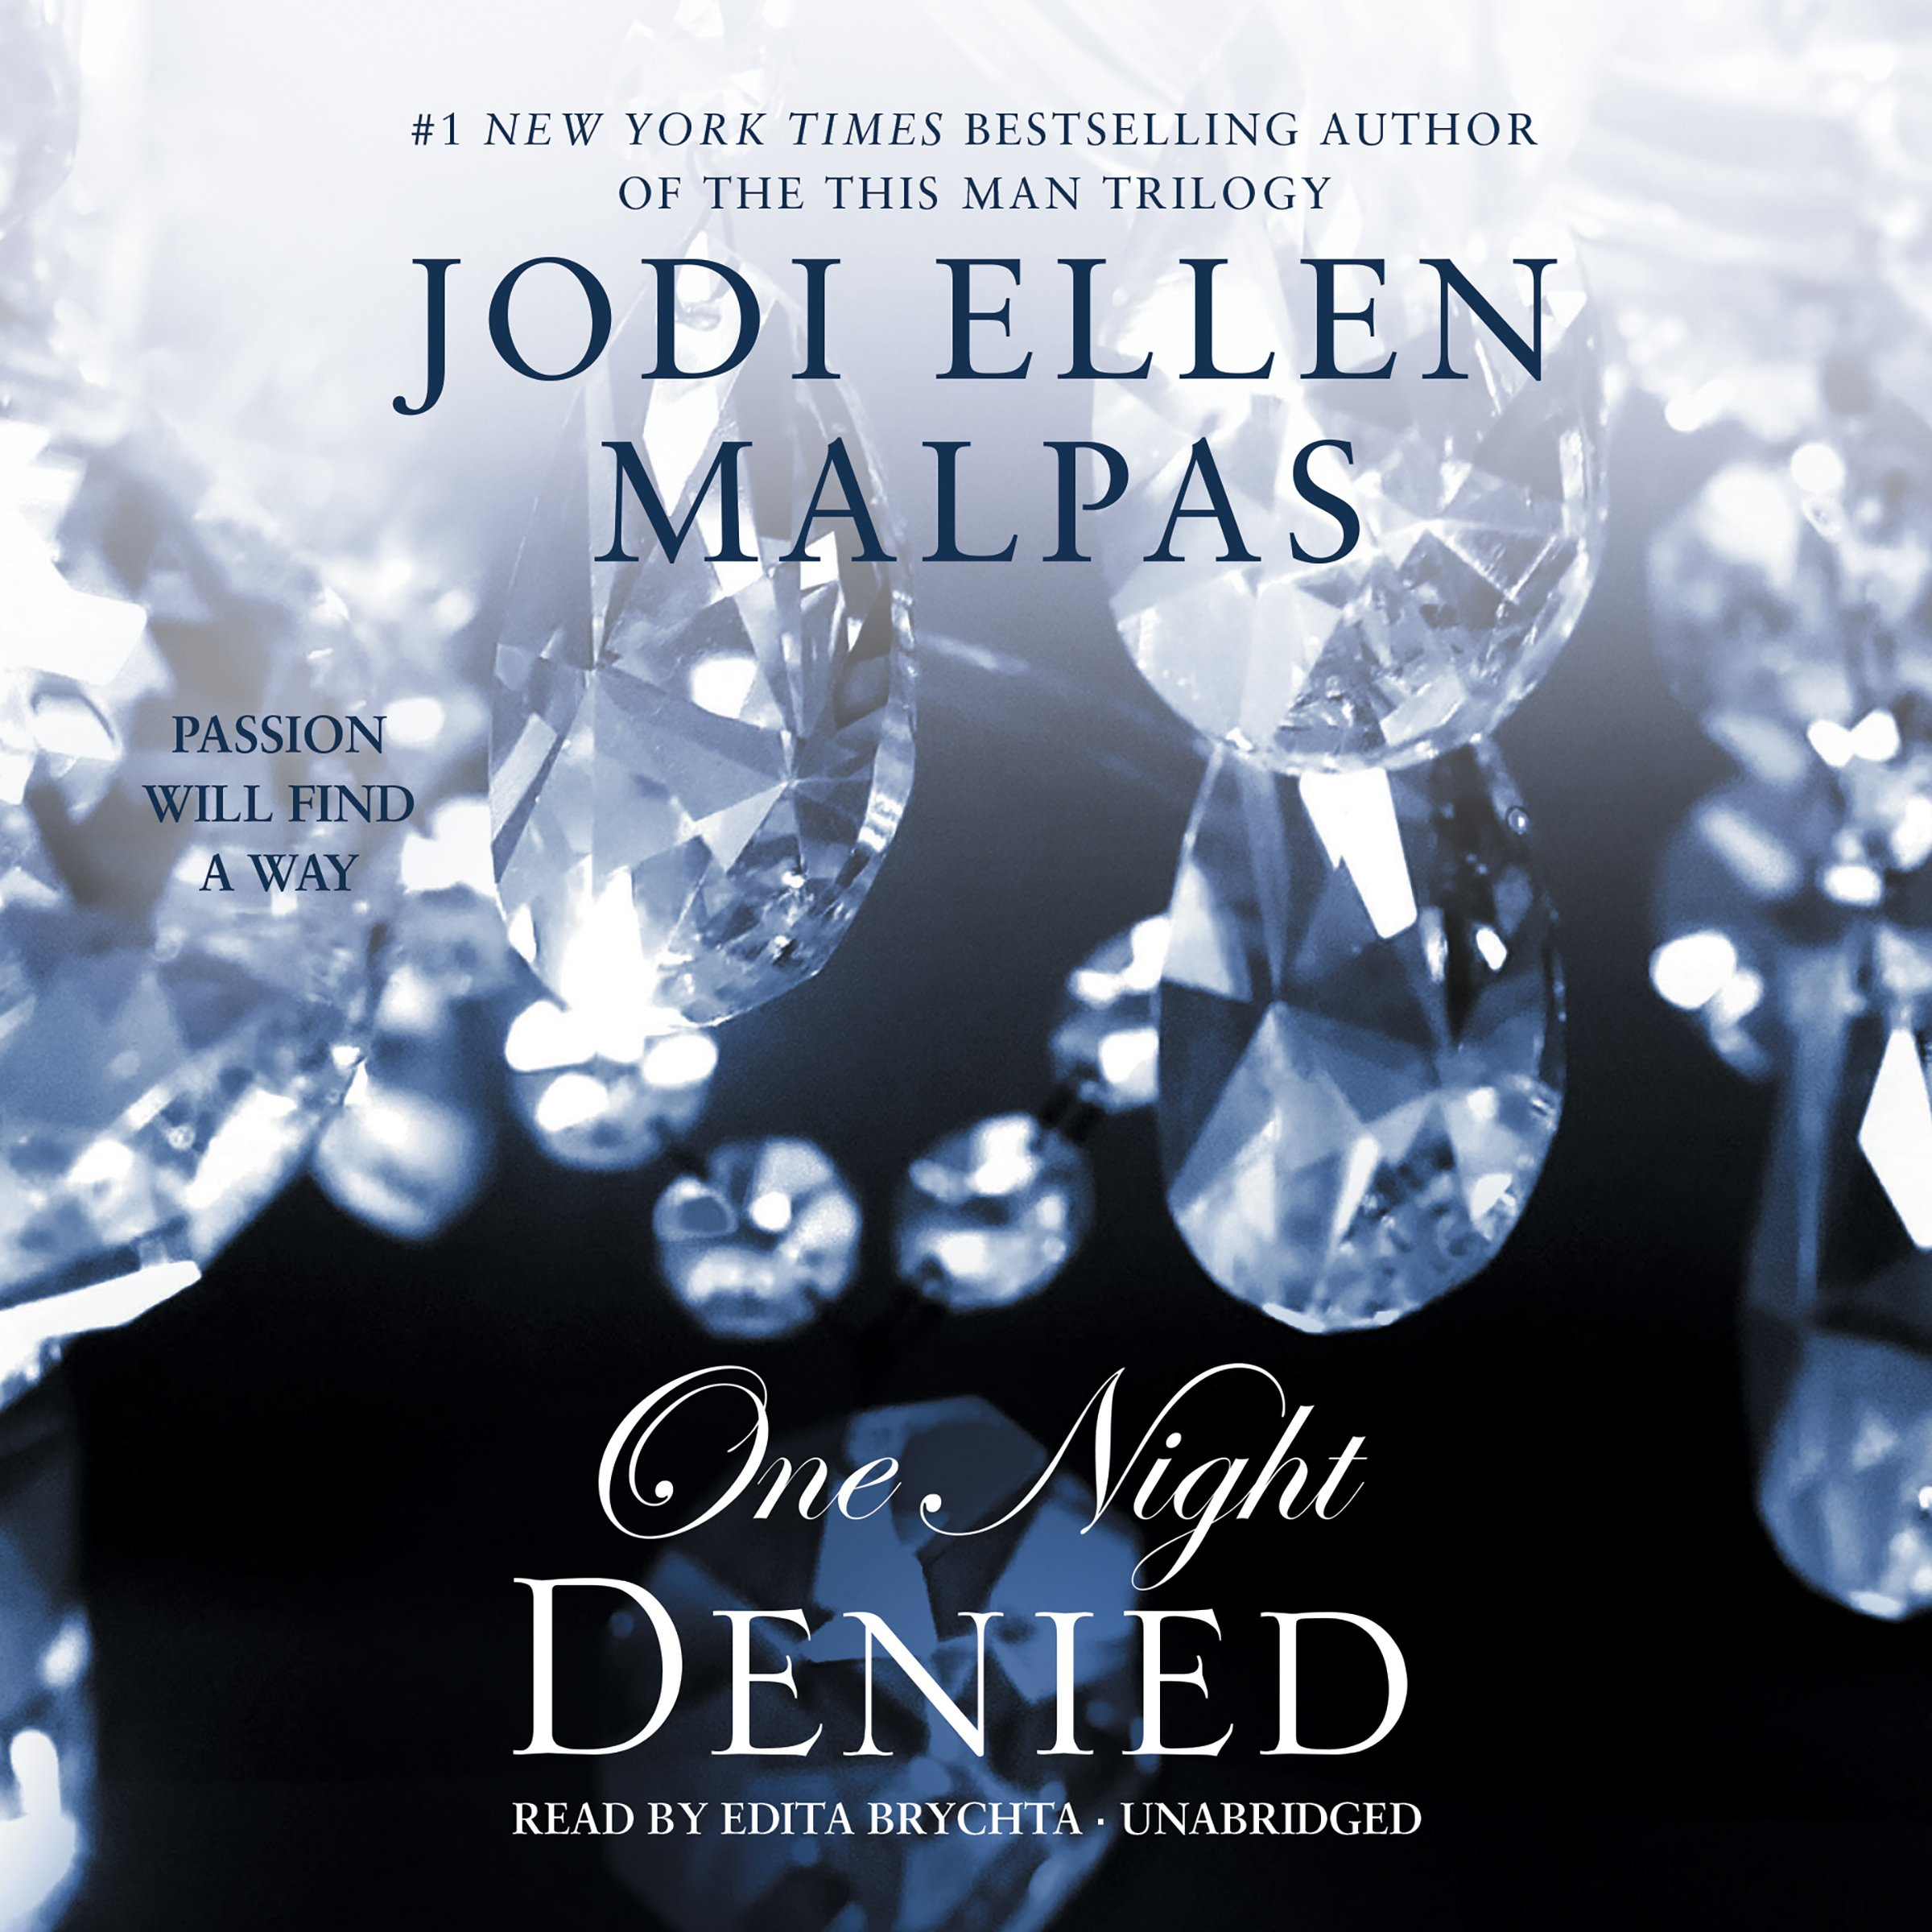 One Night: Denied (One Night Trilogy, Book 2) by Hachette Audio and Blackstone Audio